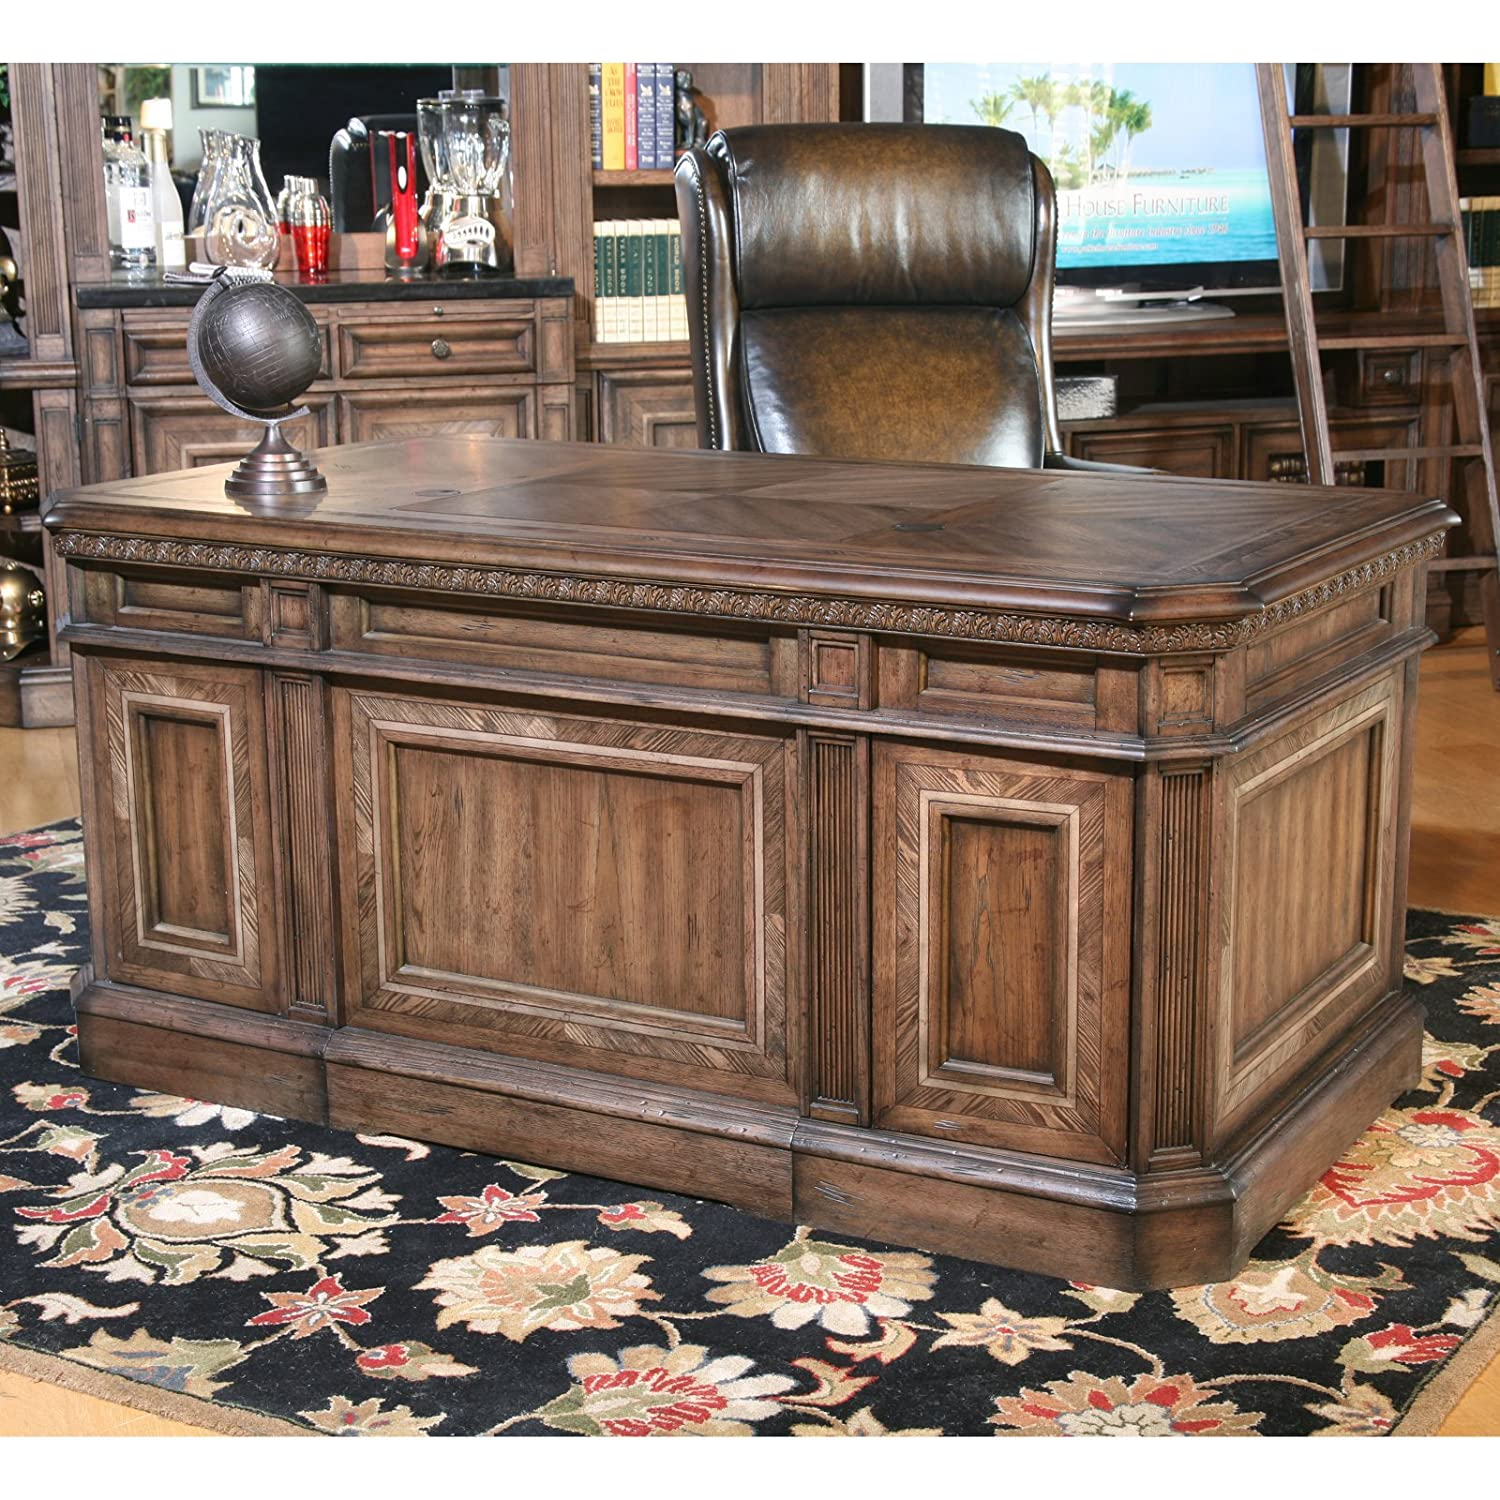 Double Pedestal Library Executive Desk Antique Vintage Pecan - Antique Executive Desk Vintage Style Office Furniture